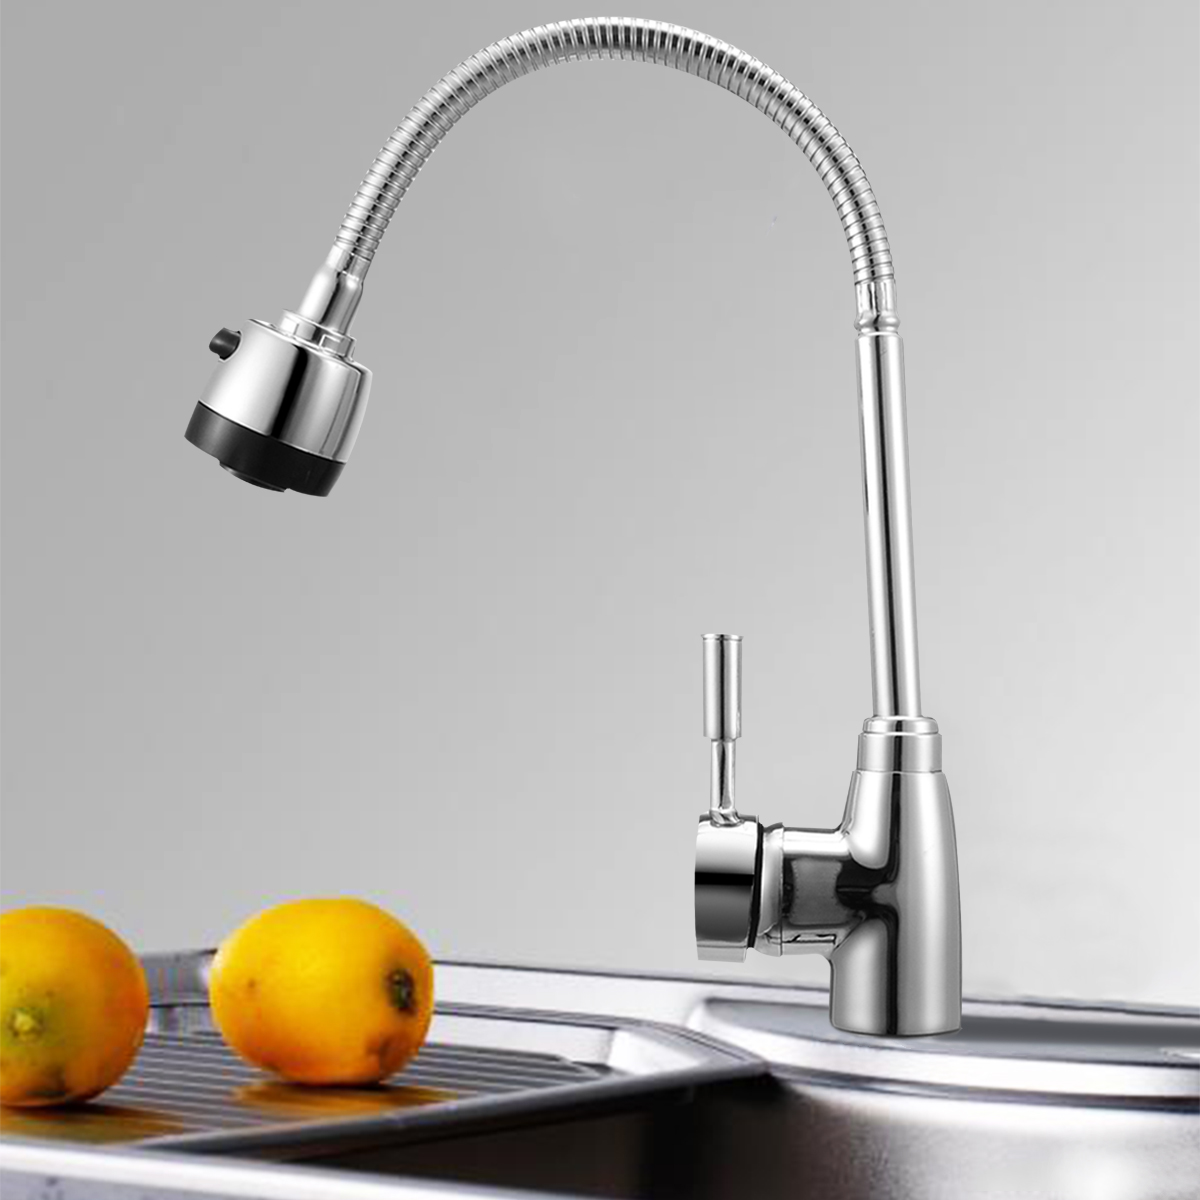 Zinc Alloy Rotating Faucet 360 Degree Rotatable Hot Cold Mixer Tap Kitchen Wash Basin Faucets For Home Bathroom Tools in Basin Faucets from Home Improvement